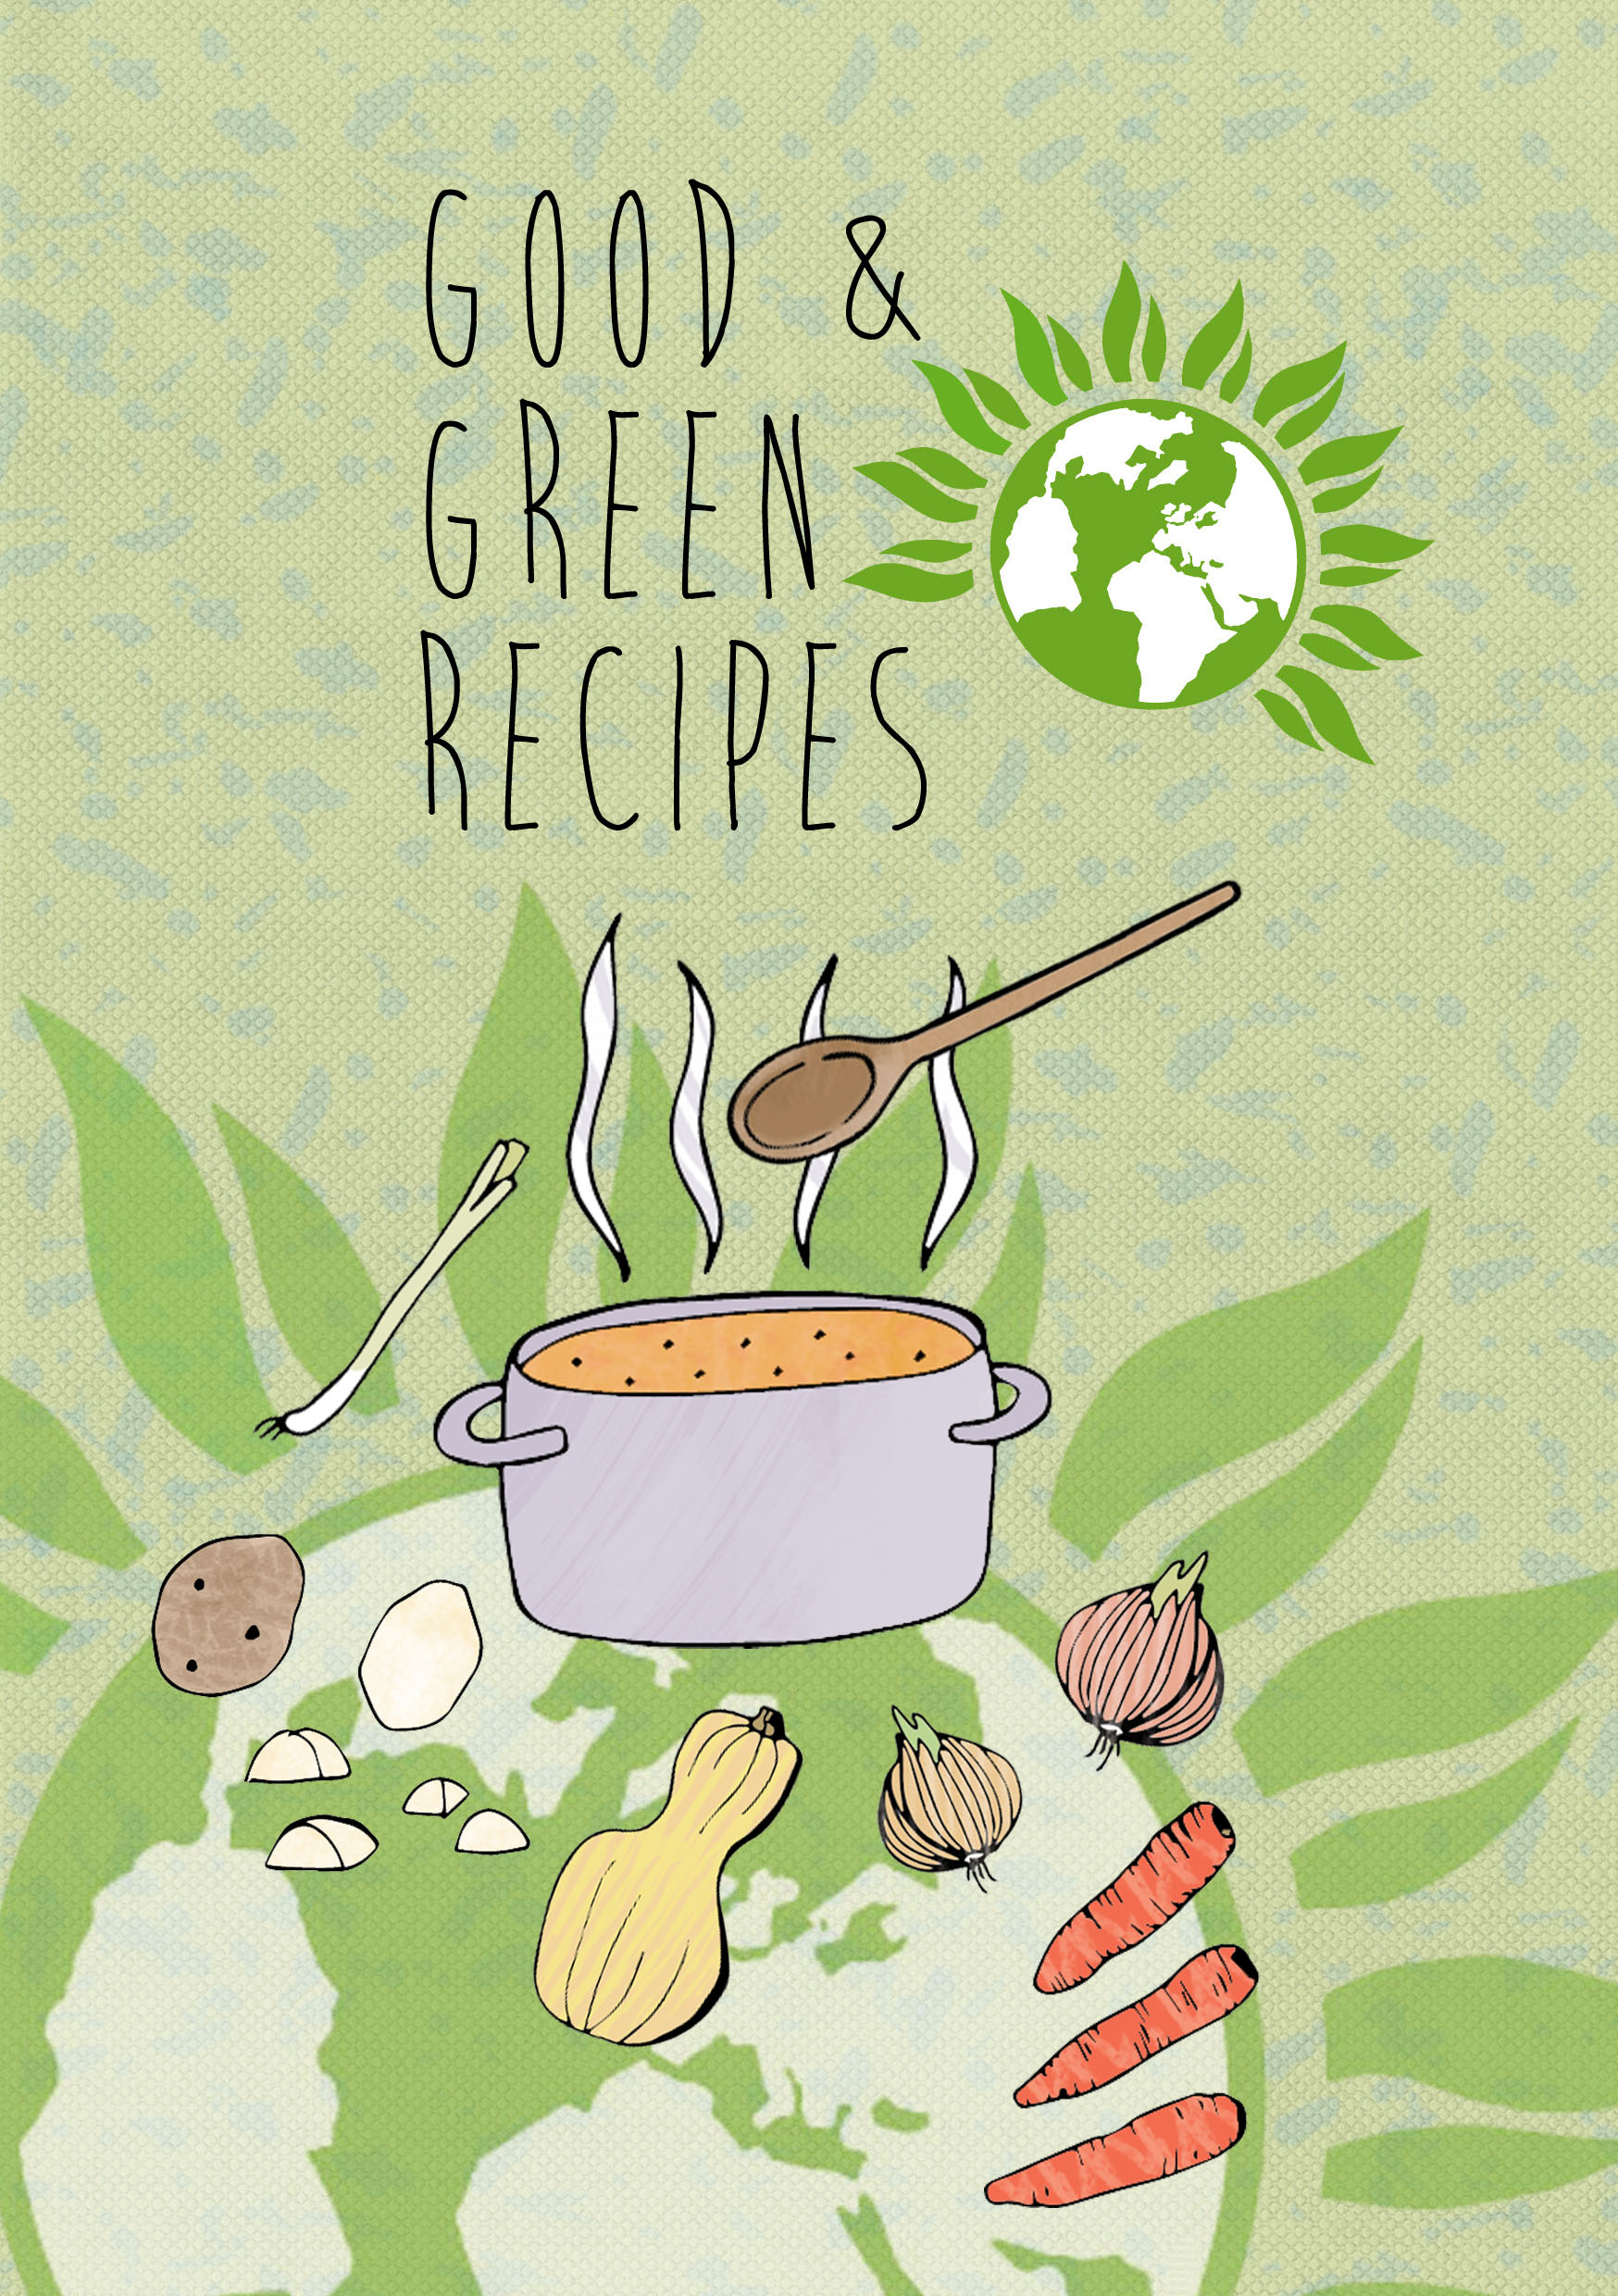 Good & Green Recipes